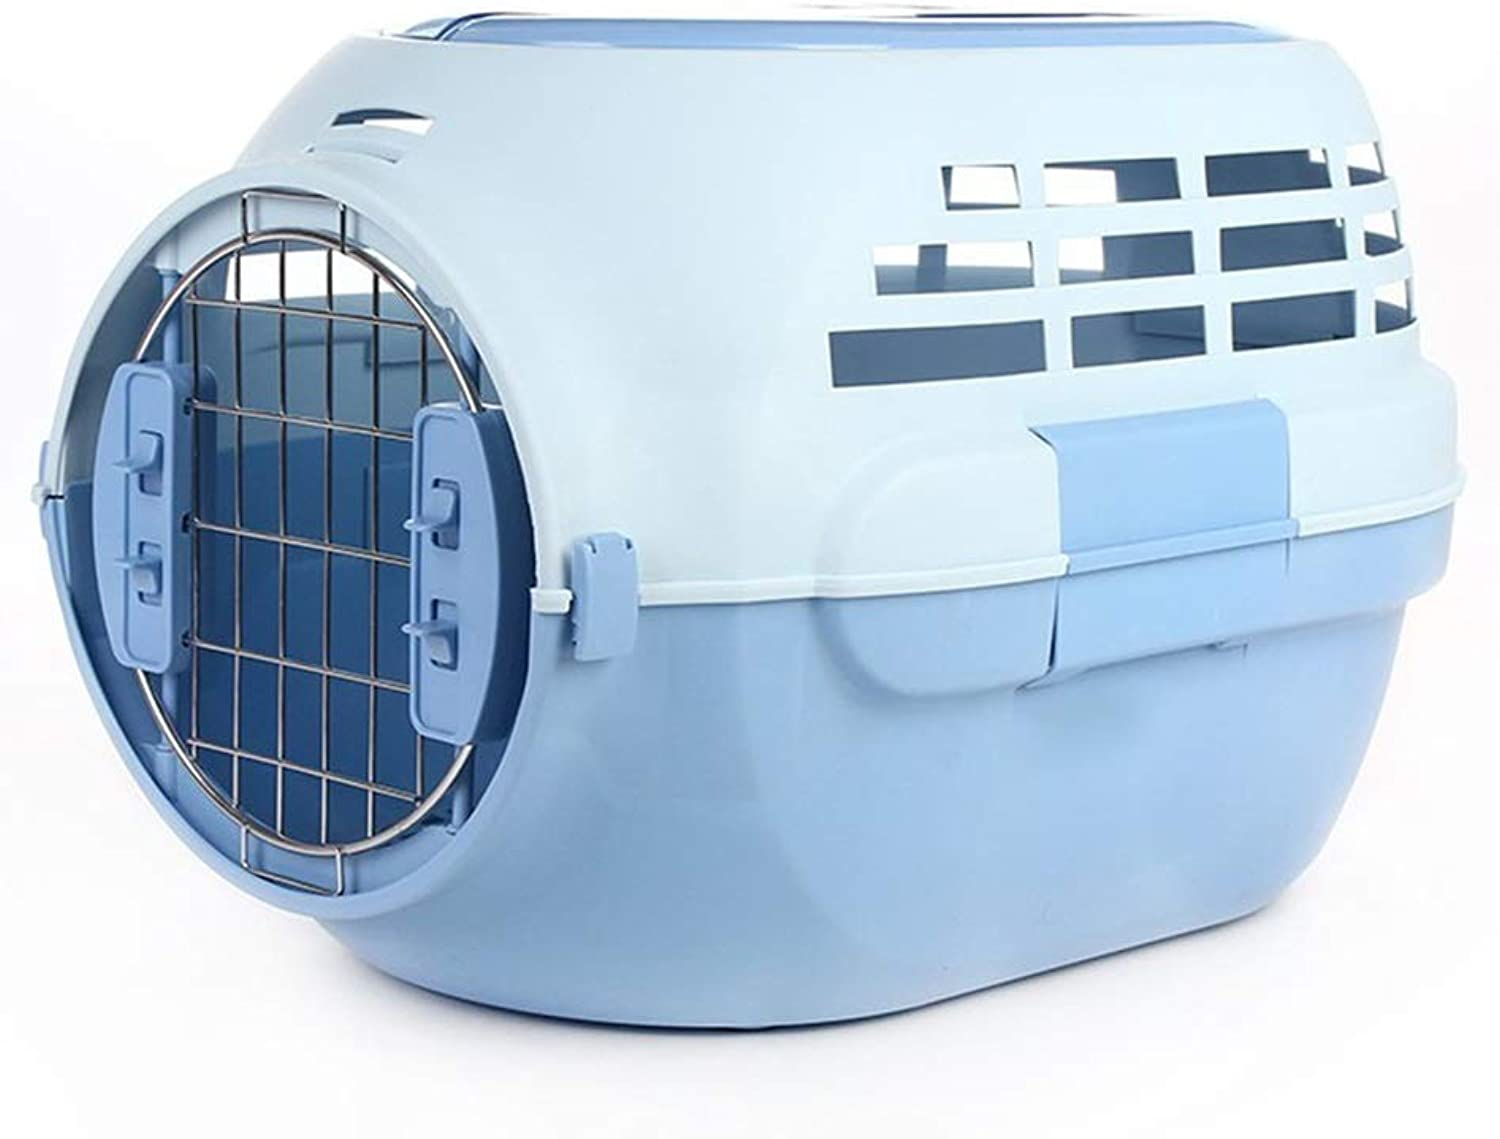 ETH With Skylight Cat Air Box Breathable Portable Out Air Box Portable Travel Consignment Pet Air Box (color   bluee)